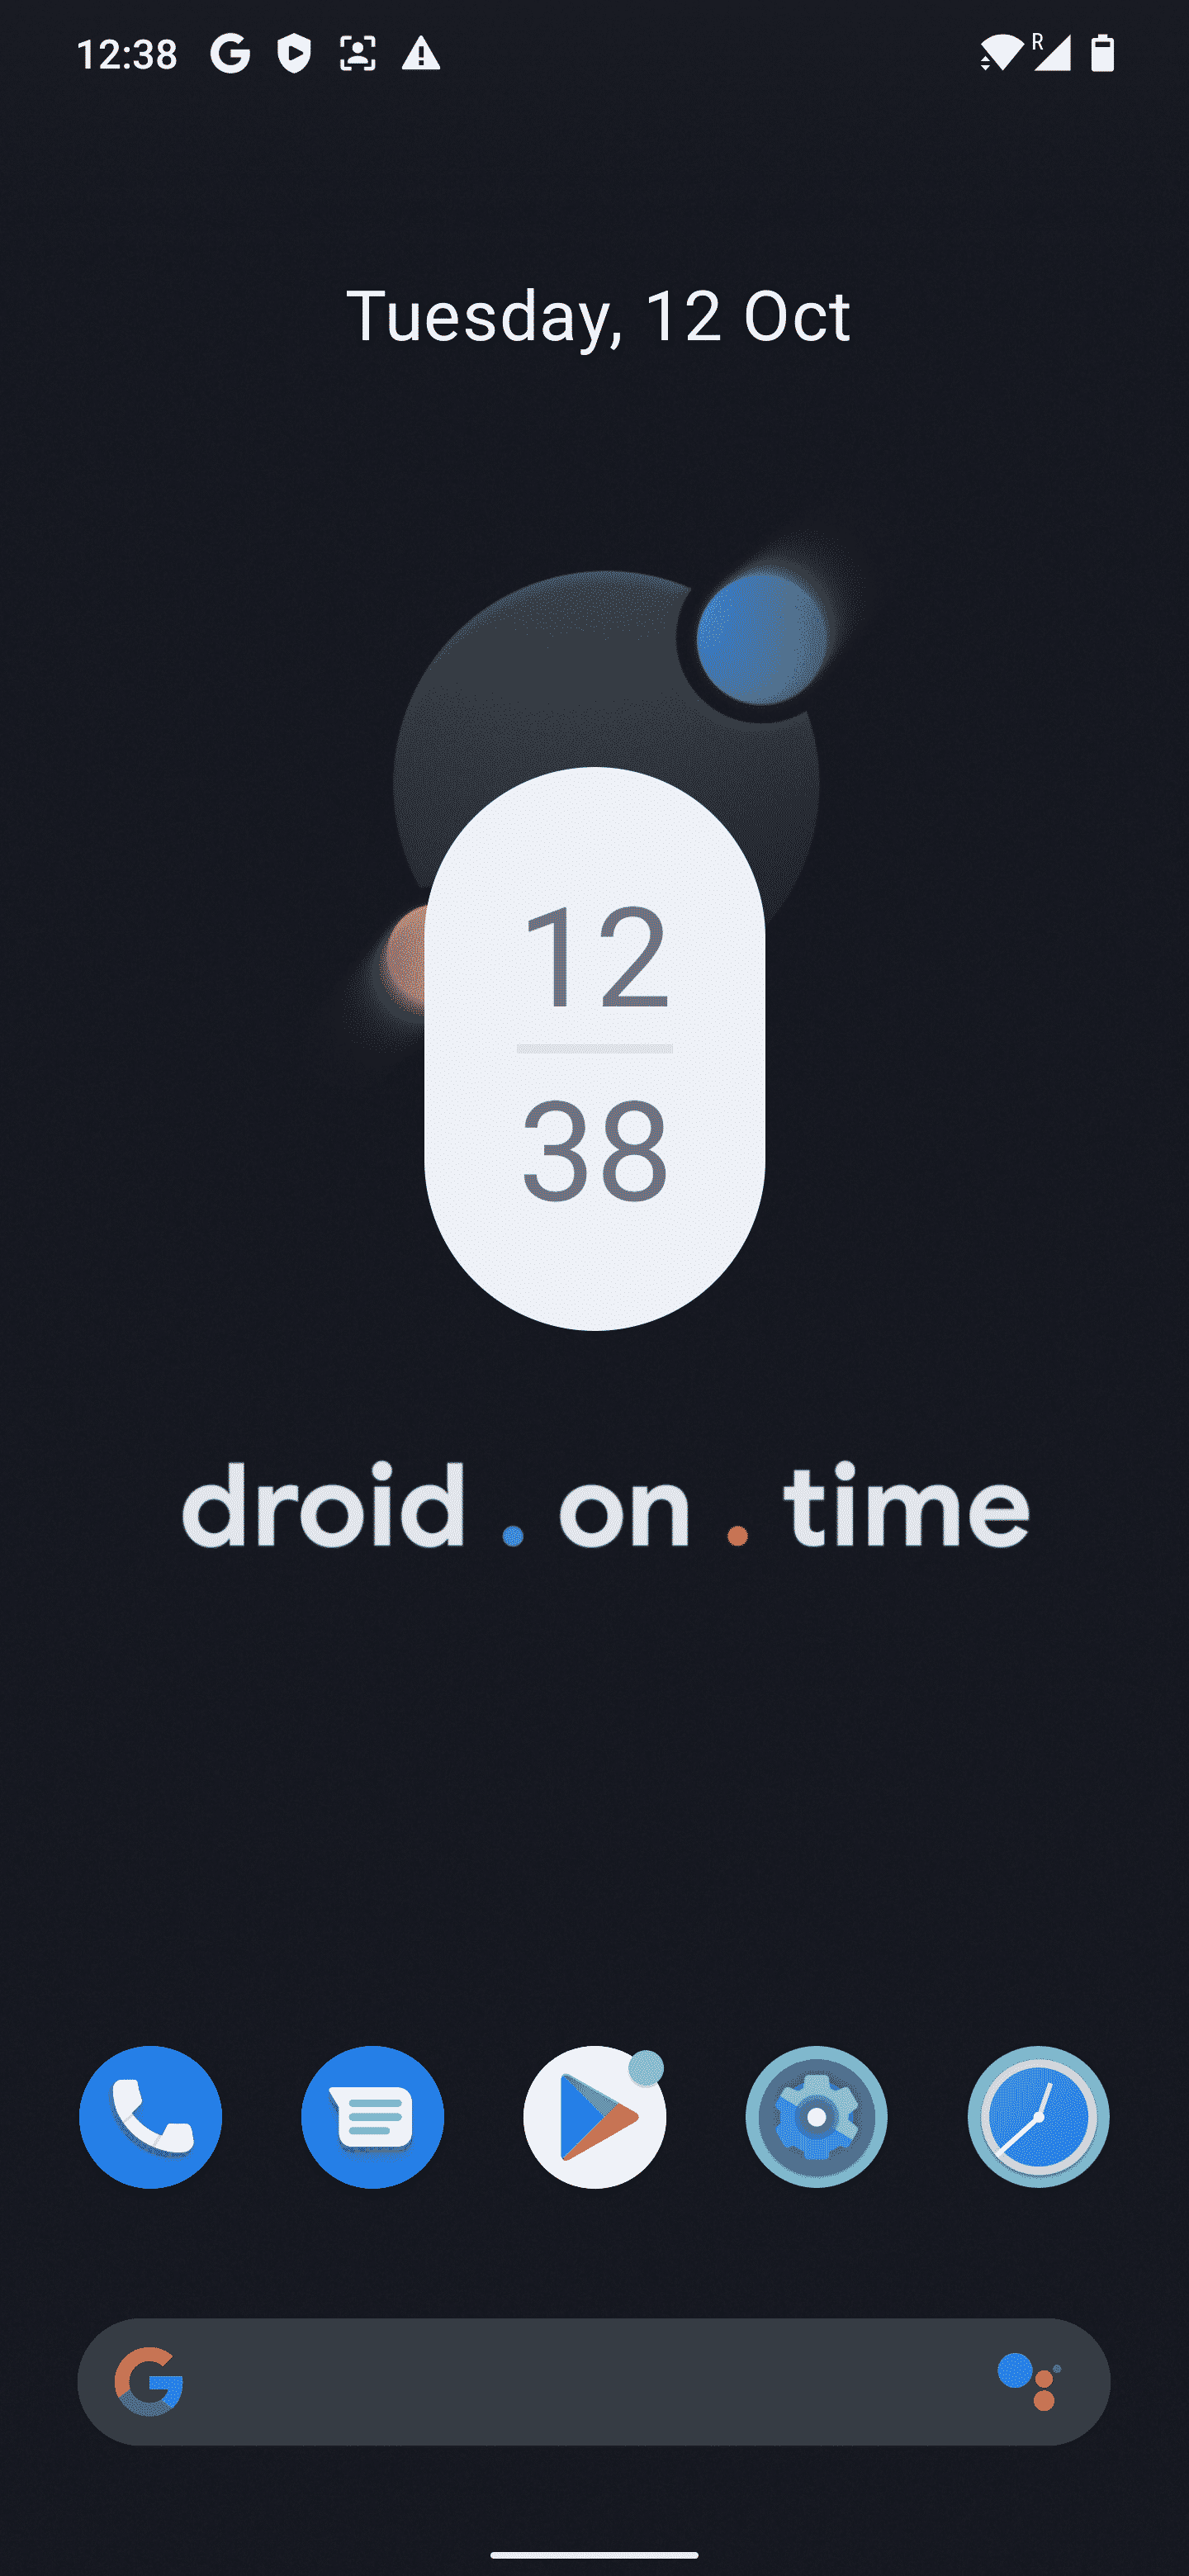 Dot OS 5.2 released with new features inspired by Android 12, including wallpaper-based theming